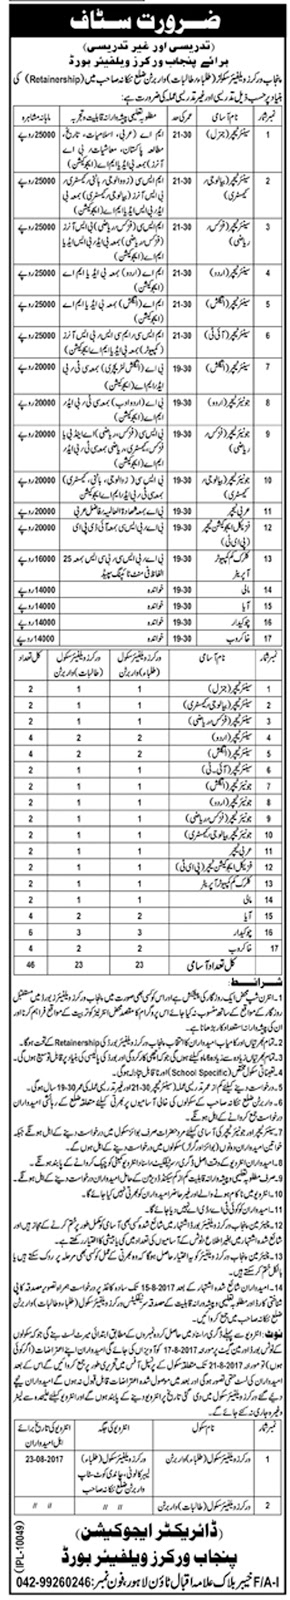 Jobs in Punjab Workers Welfare Board Lahore 31 July 2017.